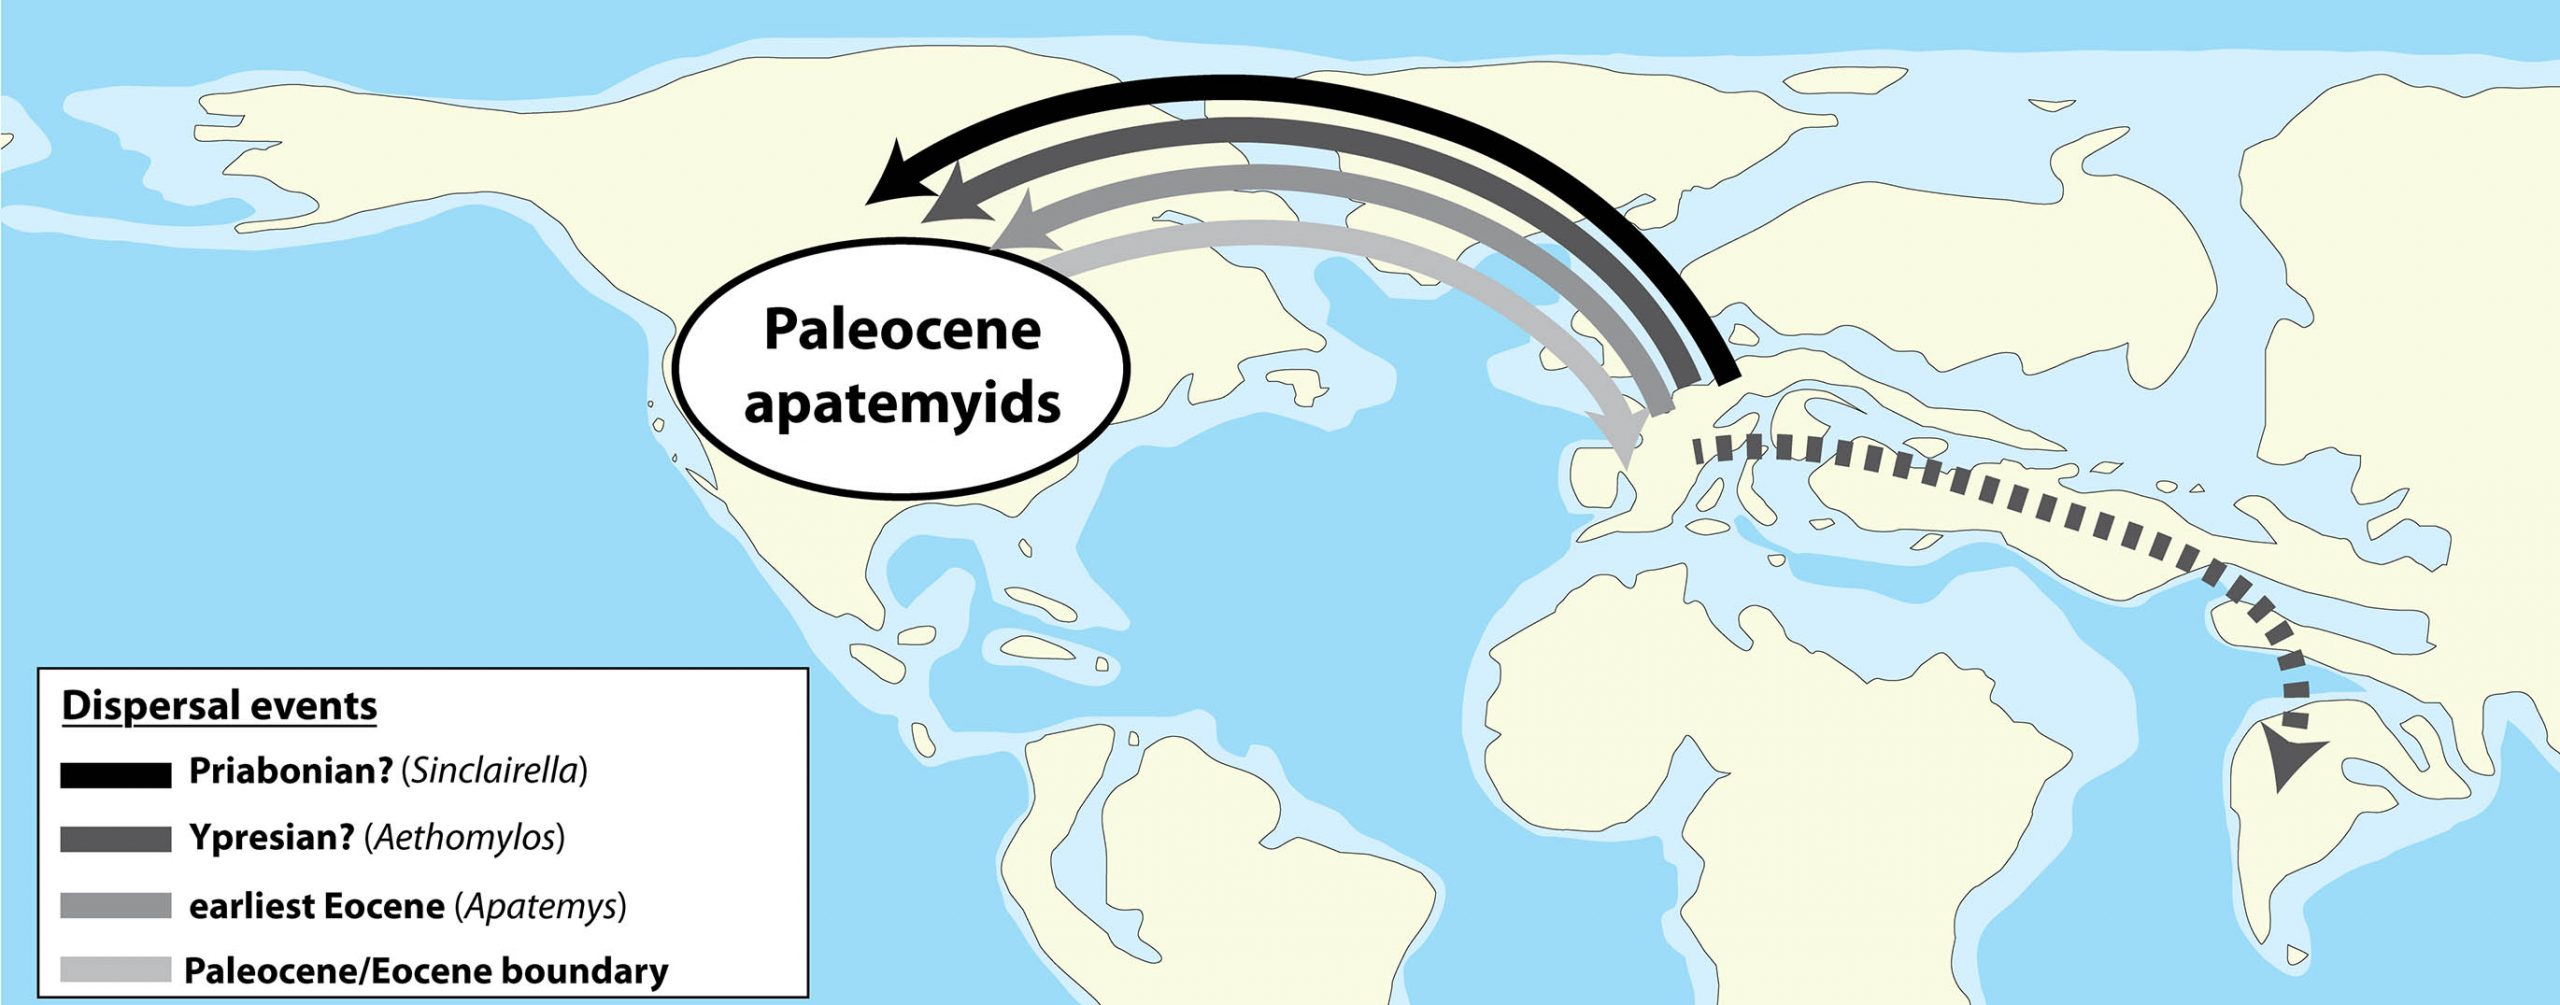 Schematic map showing the hypothetical geographic dispersion of apatemyids. Apatemyidae dispersed between North America and Europe via the Greenland Bridge and Thulean route; they dispersed from Europe to India probably through the Turgai Strait and/or along the Tethyan shore. Oldest apatemyids are recorded in the Paleocene of North America (Torrejonian) (Simpson 1940; McKenna 1963a; Szalay 1968; West 1973b). See text for explanations of the dispersal events. The exact timing of the dispersals of Apatemyidae in India is unknown but probably occurred in the Ypresian. Paleogeographic map adapted from Ron Blakey, Eocene (http://www2.nau.edu/rcb7/050Marect.jpg)